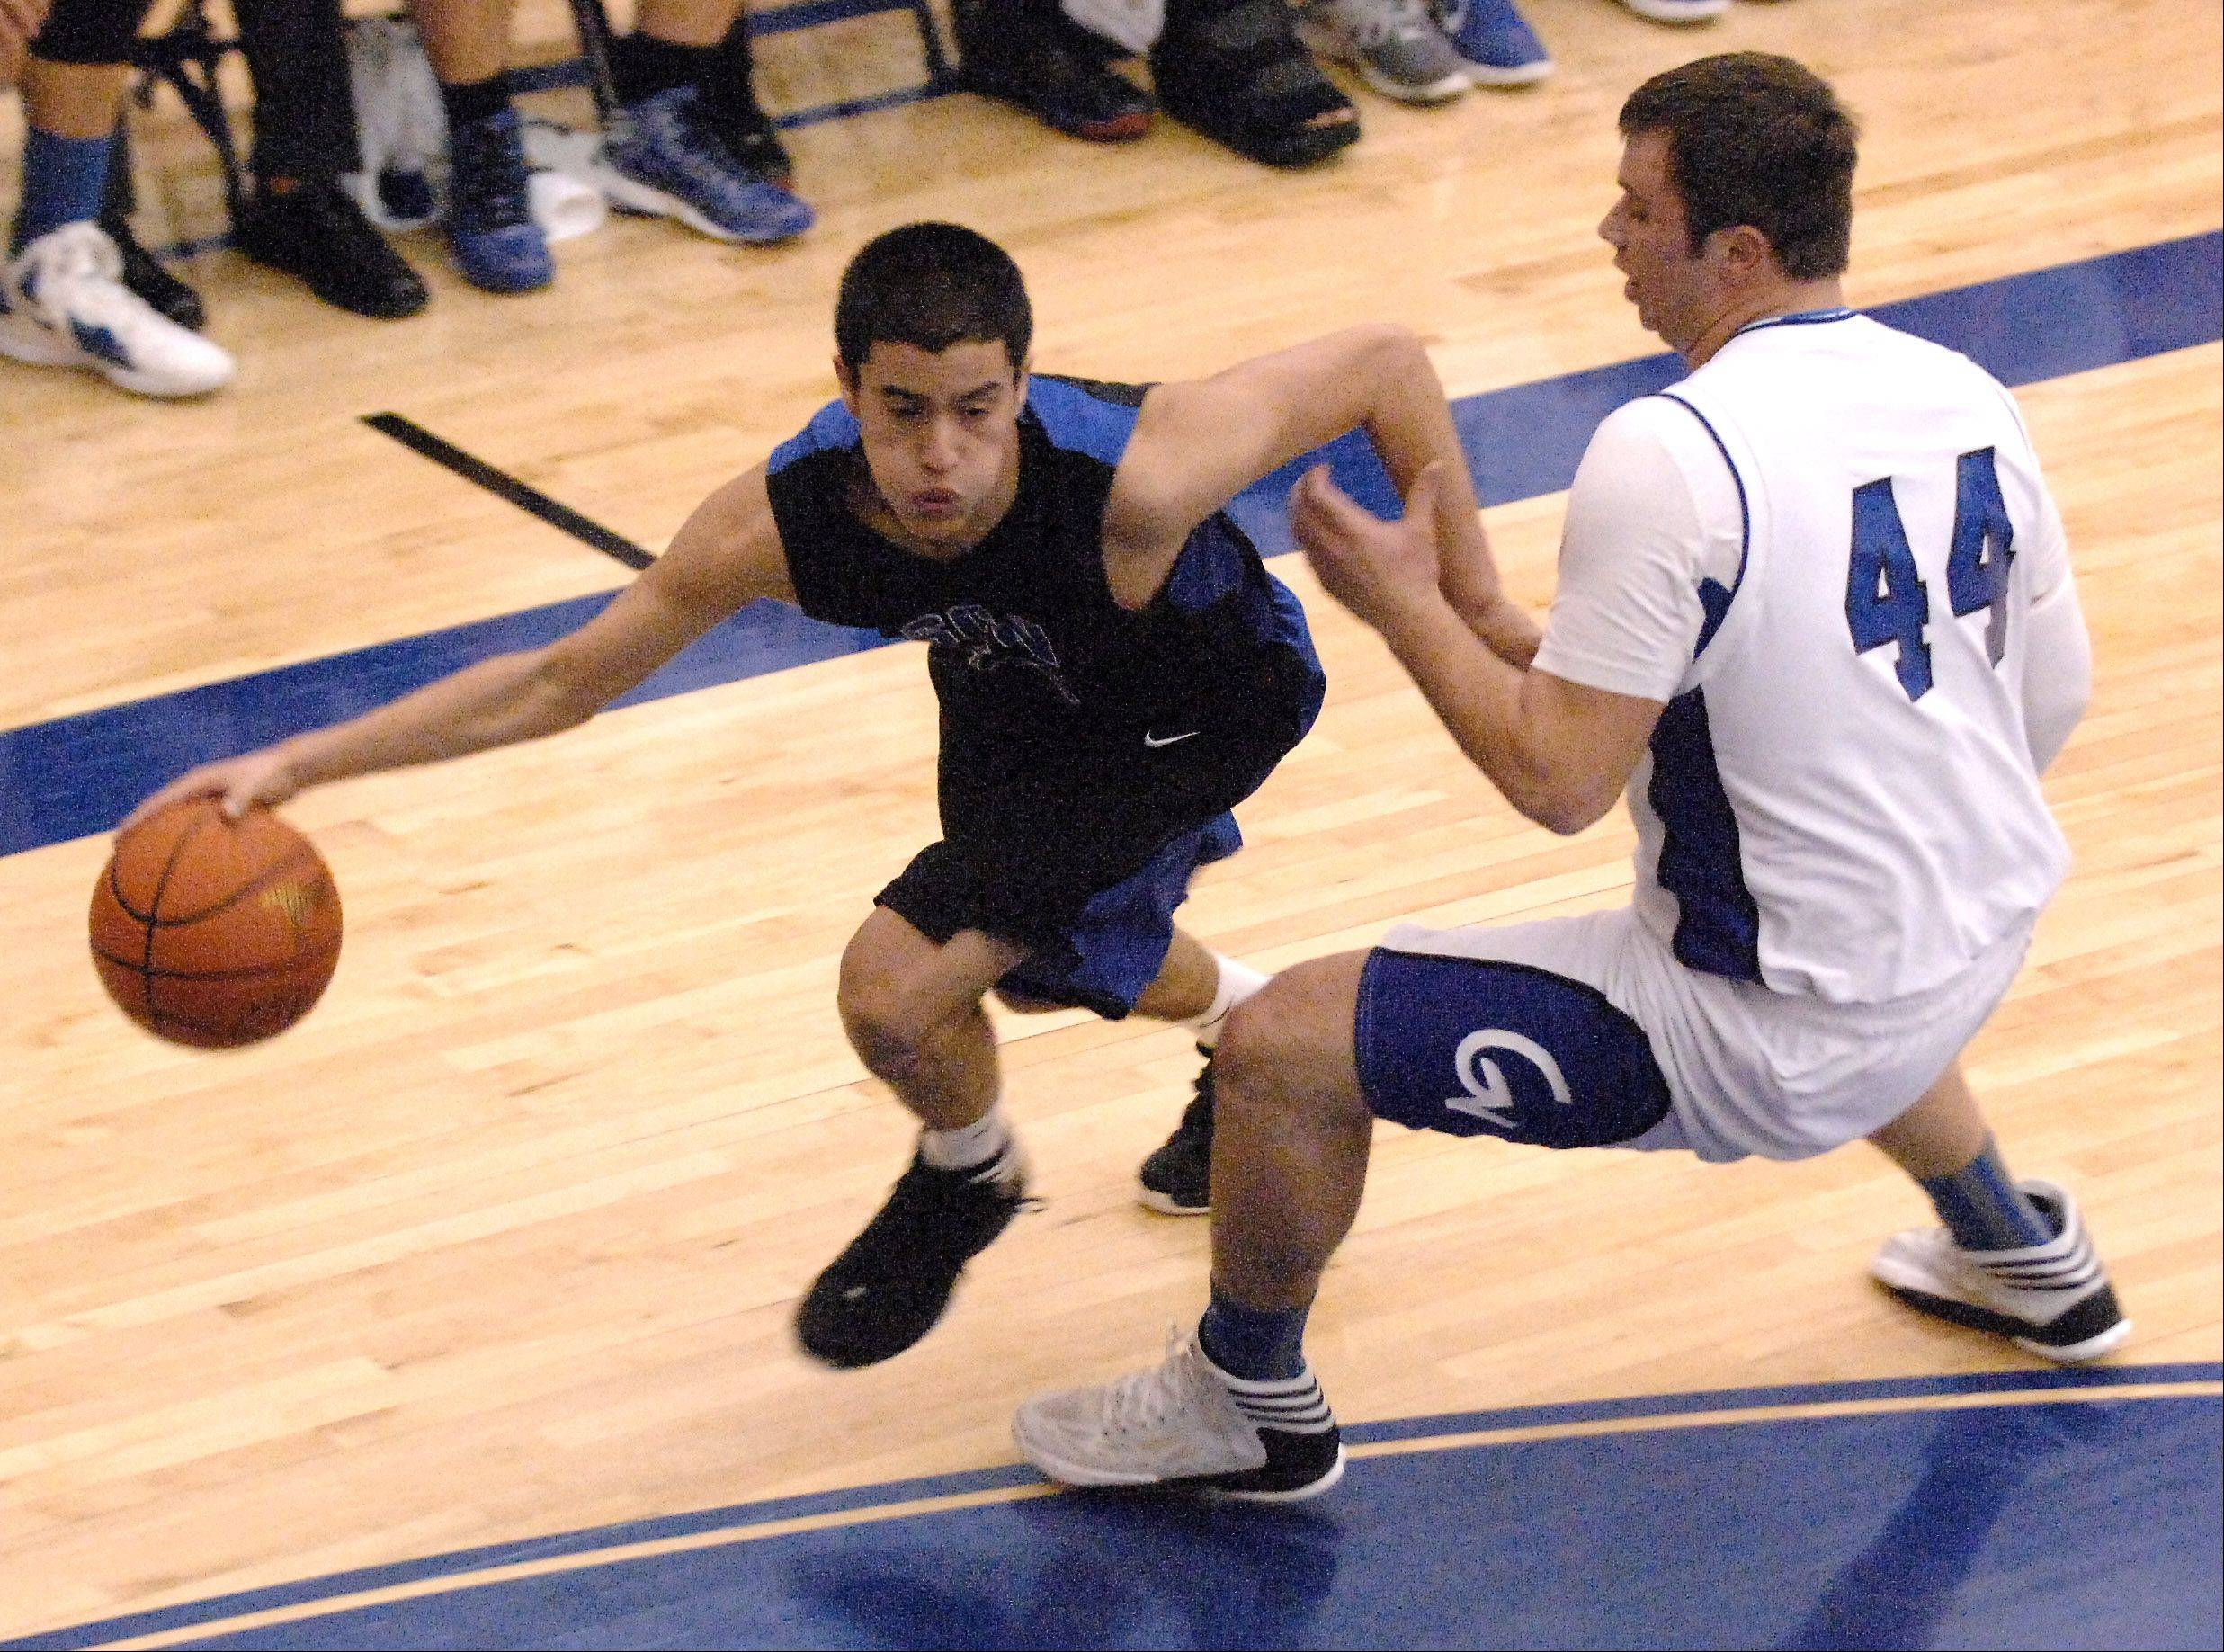 St. Charles North's Tony Neari drives past Geneva's Connor Chapman during Friday's game in Geneva.